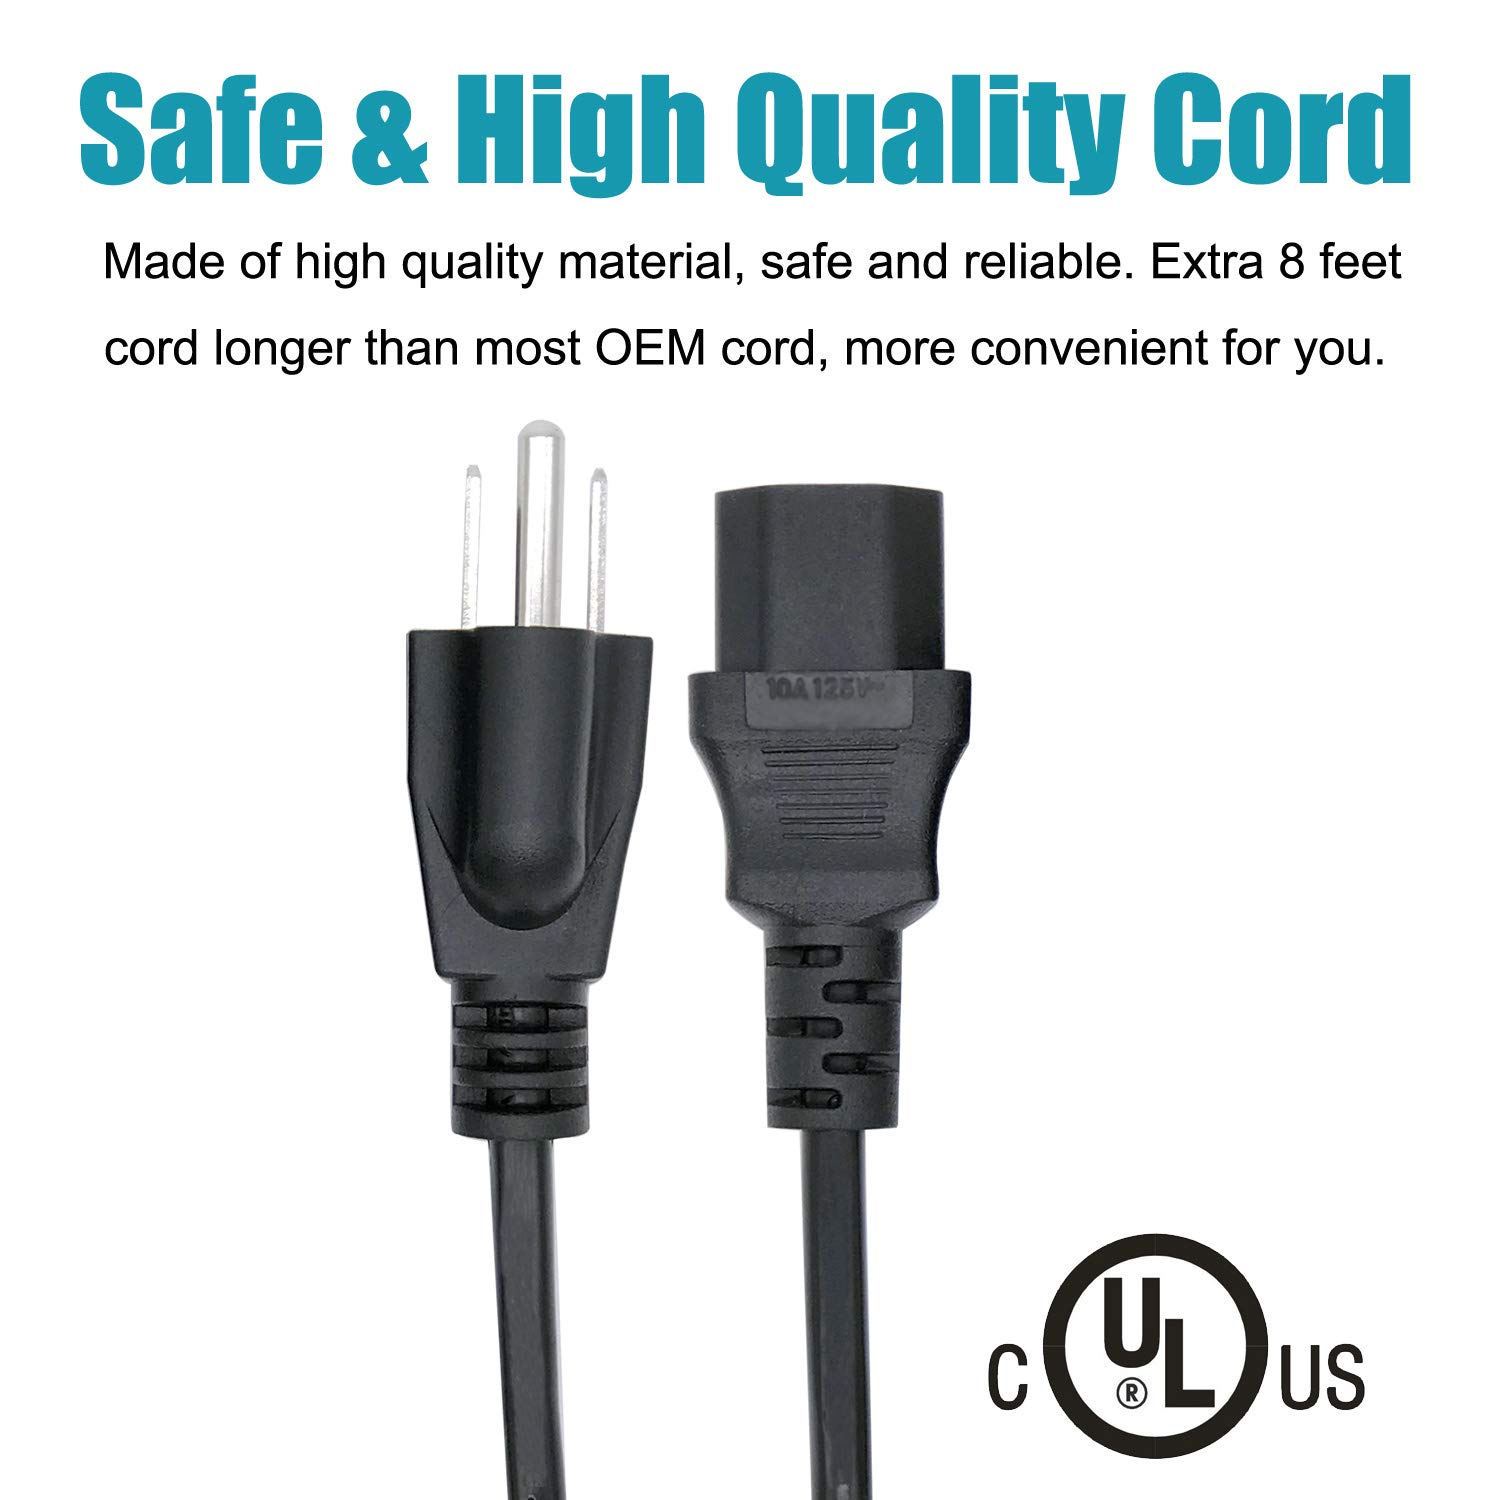 Saireed UL Listed 3 Prong Power Cord for LG 37LG30 37LG30DC 37LG50 37LC2D 37LC7D 37LD450 37LF11 42LC4D 42LC7D 42LD450 42LD520 42LB5DF 42LBX 42LC2D TV Power Cord 8ft Replacement C13 AC Cable